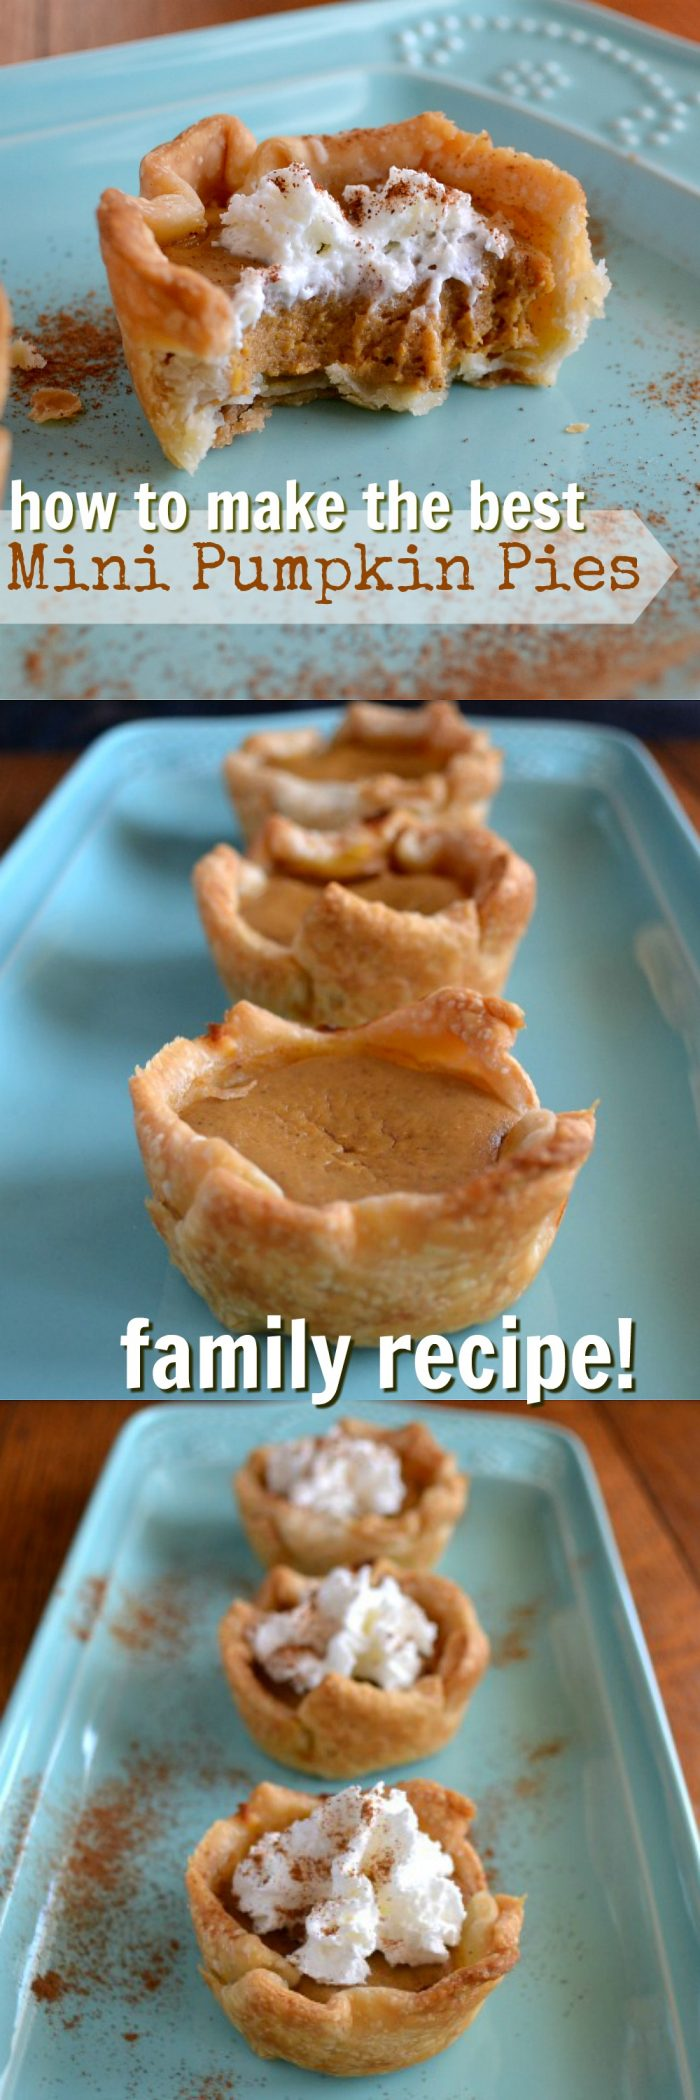 how to make grandma's mini pumpkin pies!